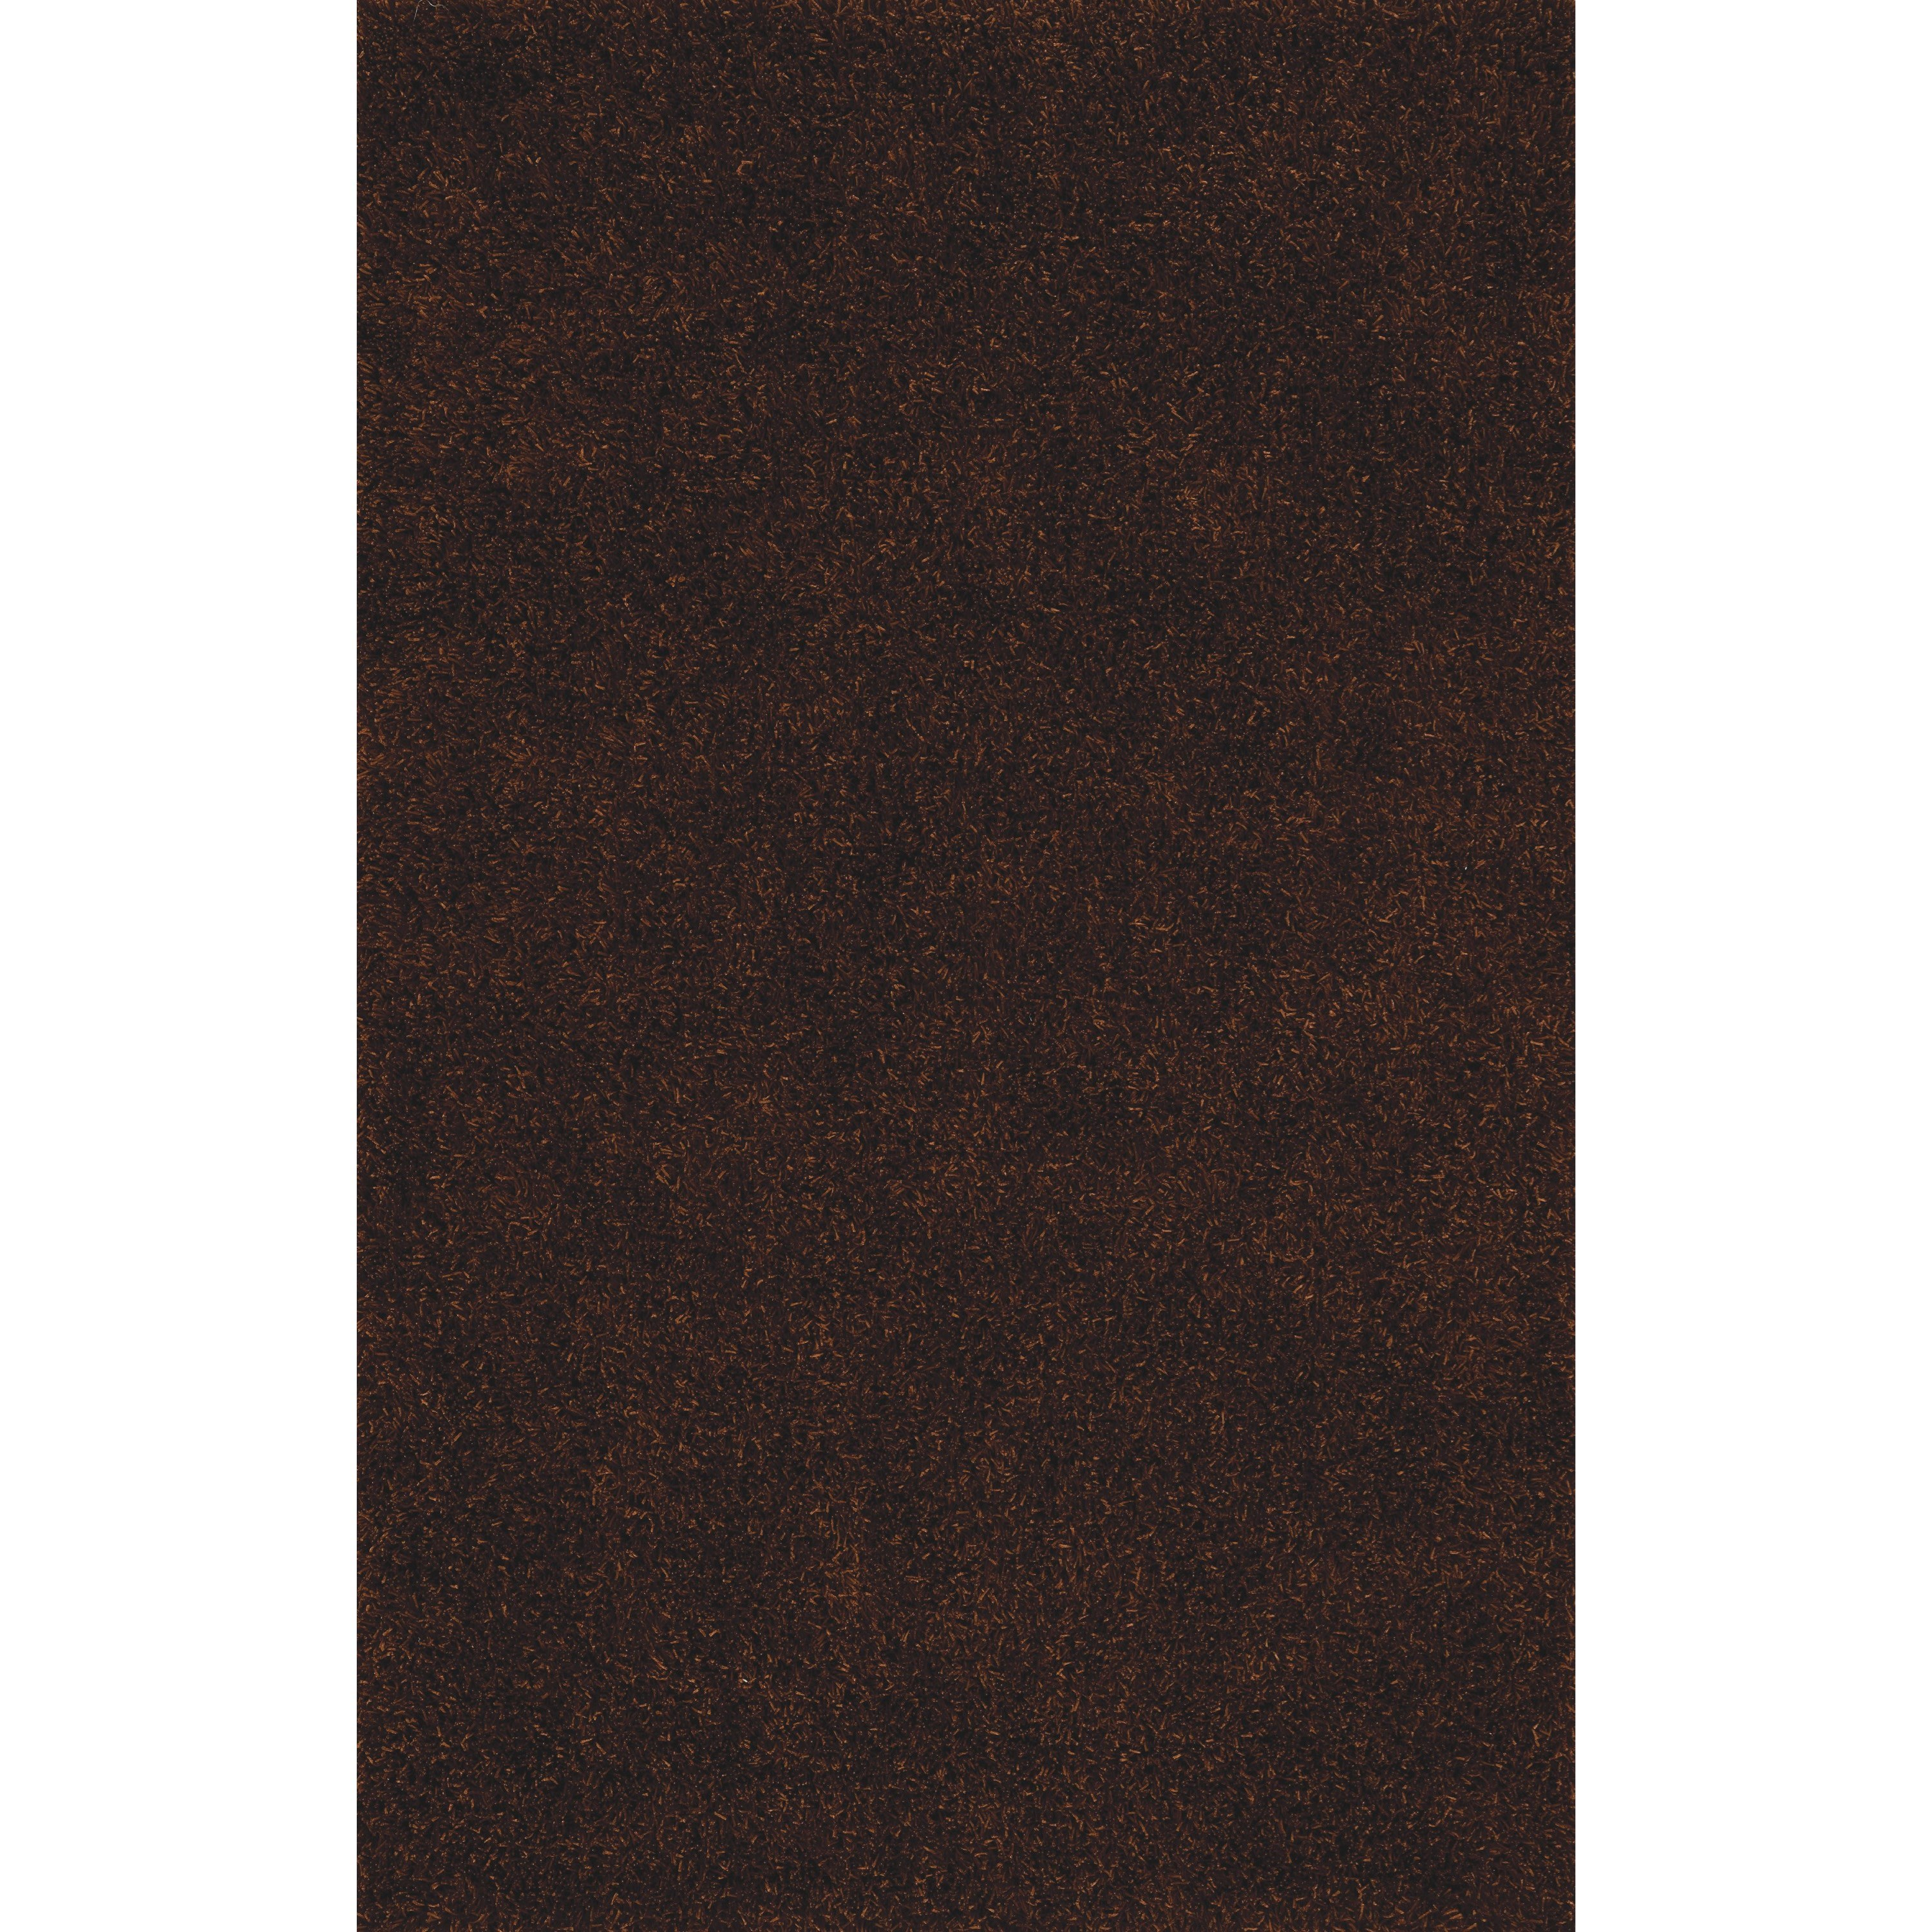 Dalyn Illusions Chocolate 9'X13' Rug - Item Number: IL69CH9X13